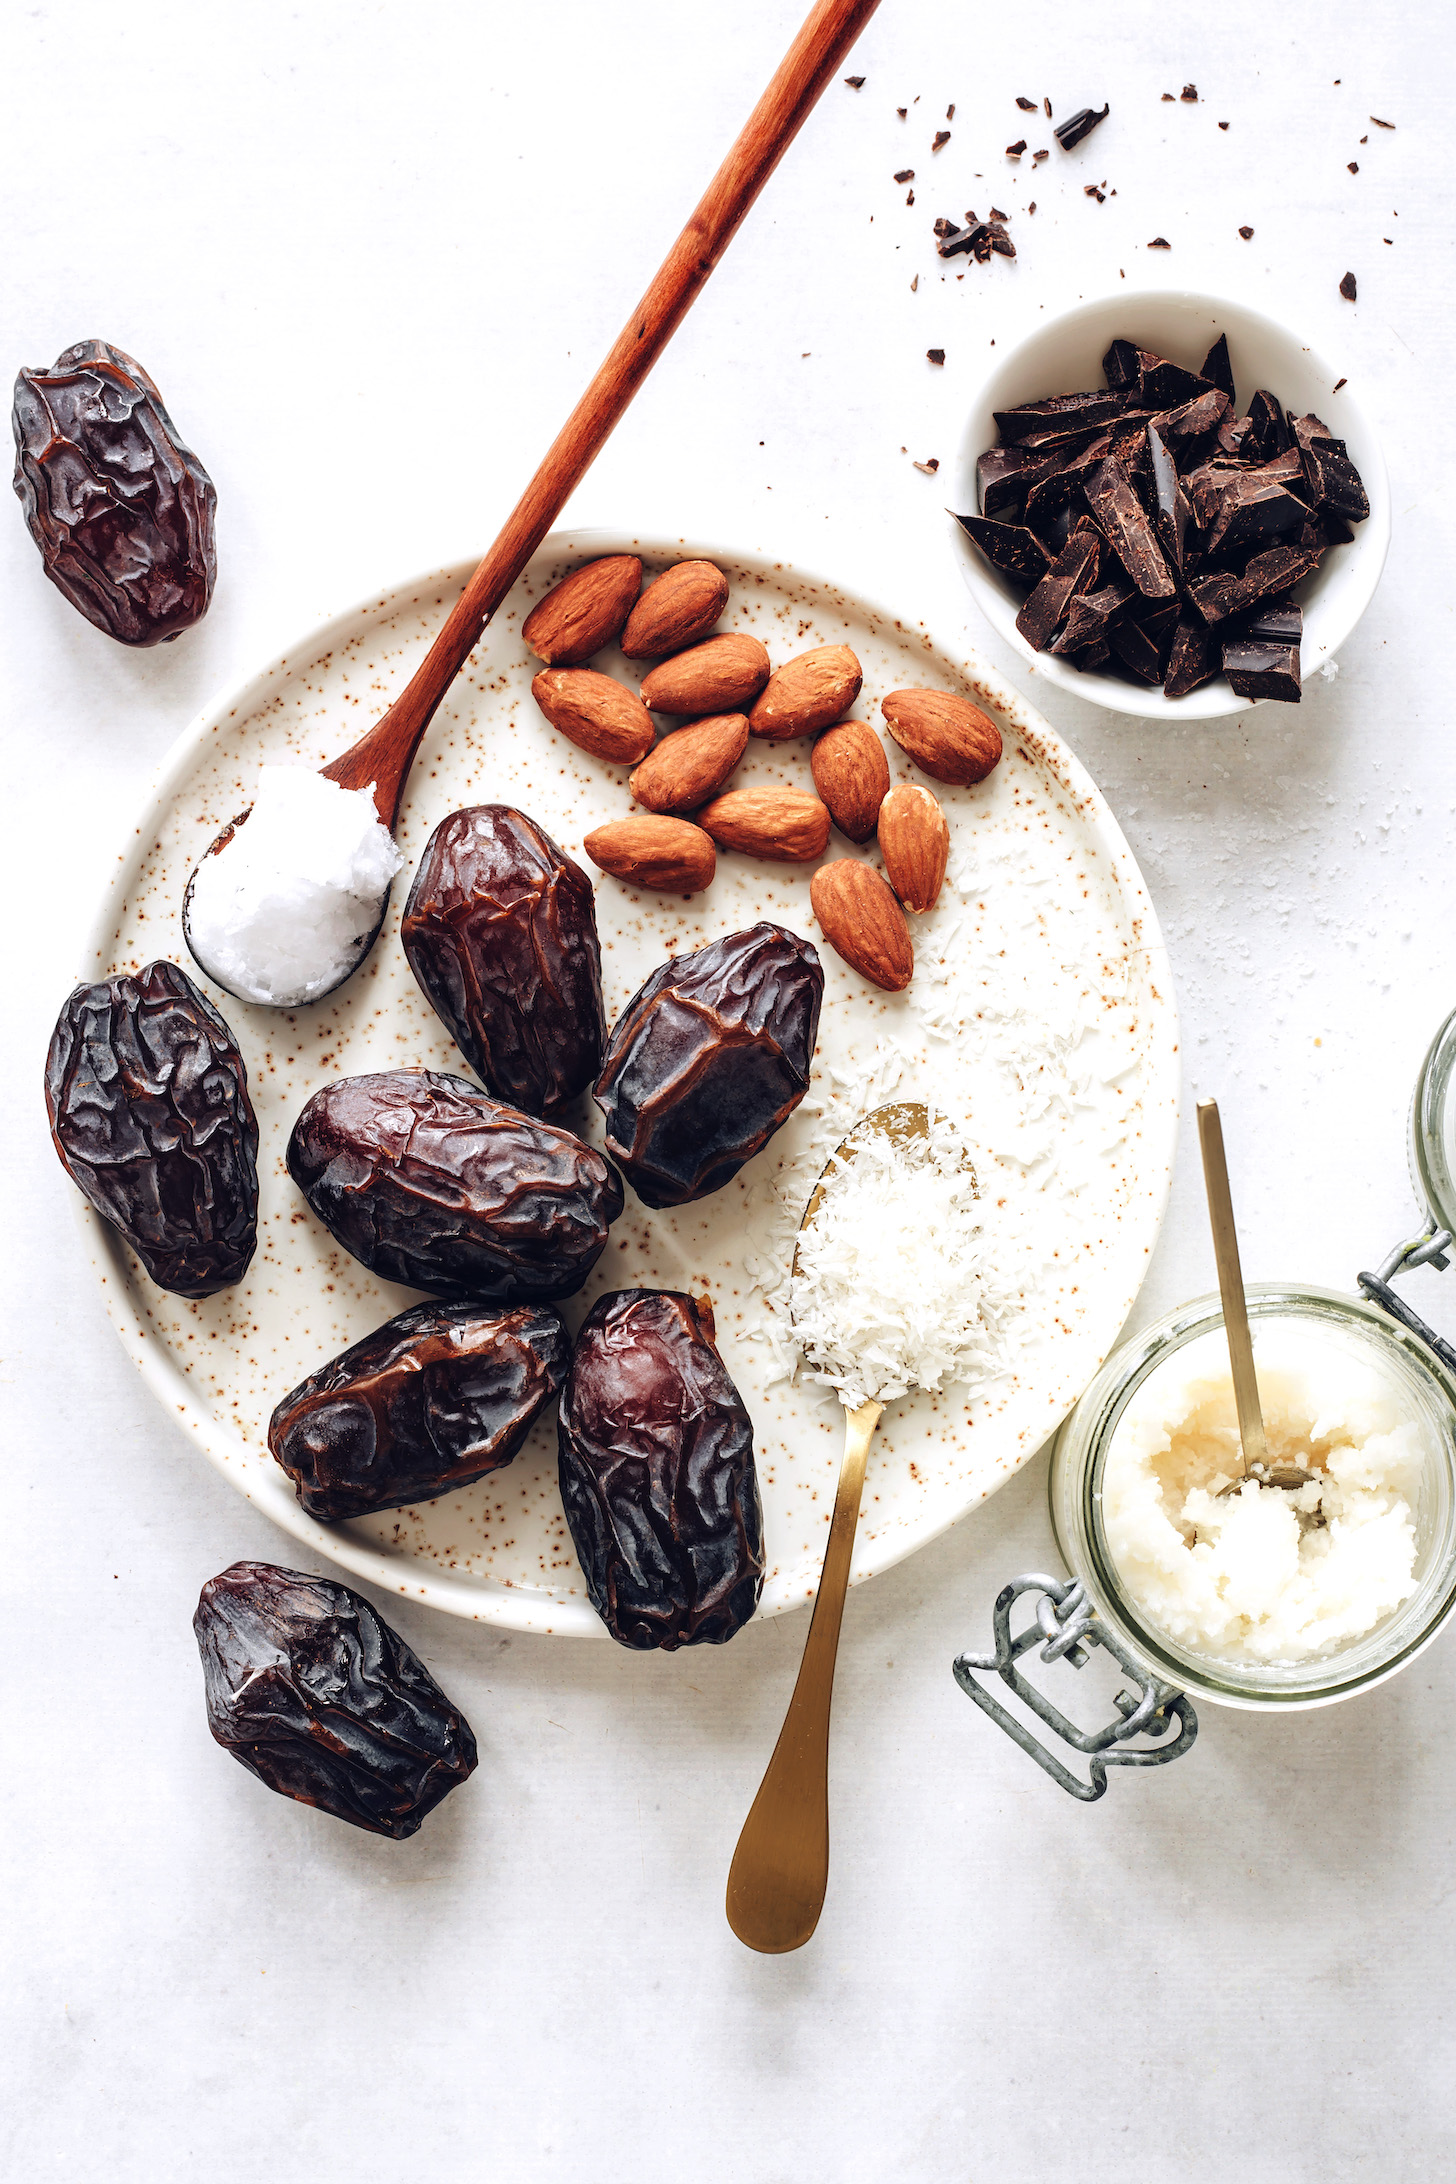 Medjool dates, coconut butter, desiccated coconut, almonds, coconut oil, and dark chocolate